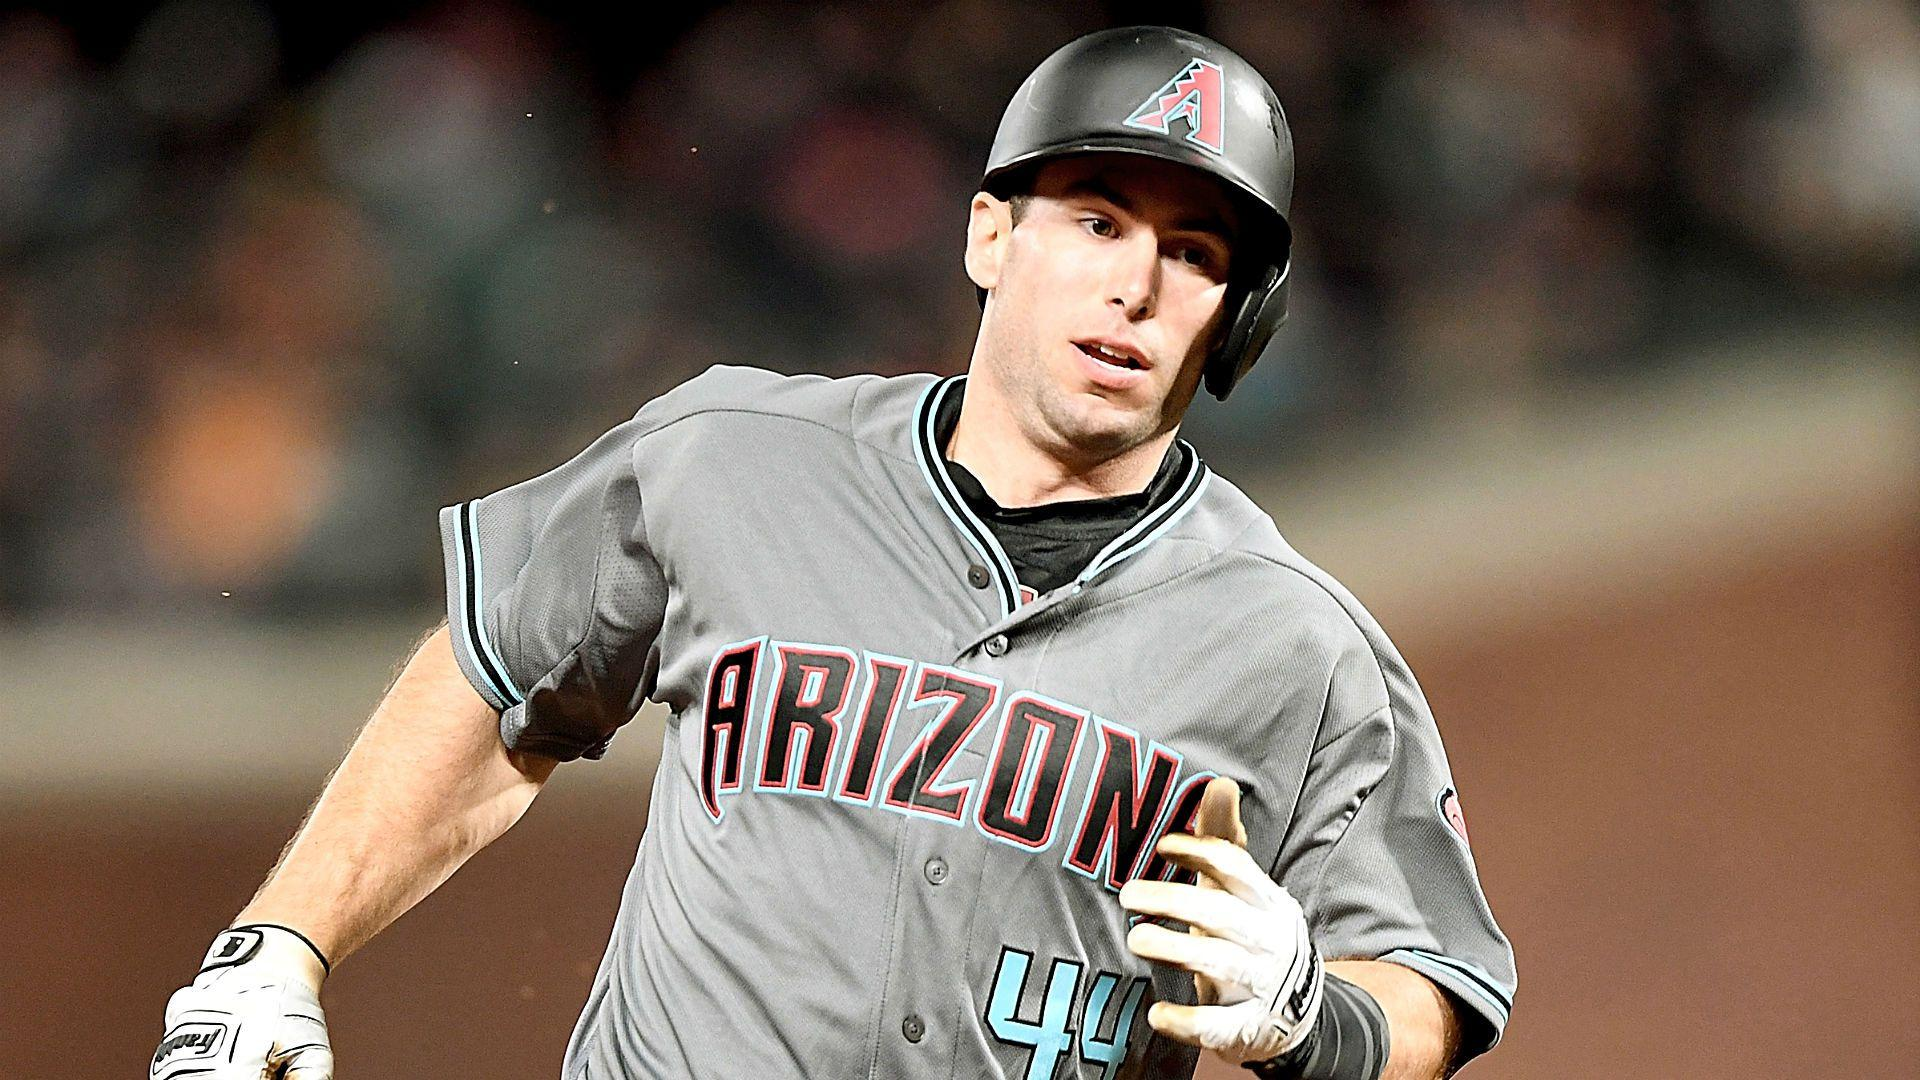 Jeff Samardzija, Paul Goldschmidt know how to play by the